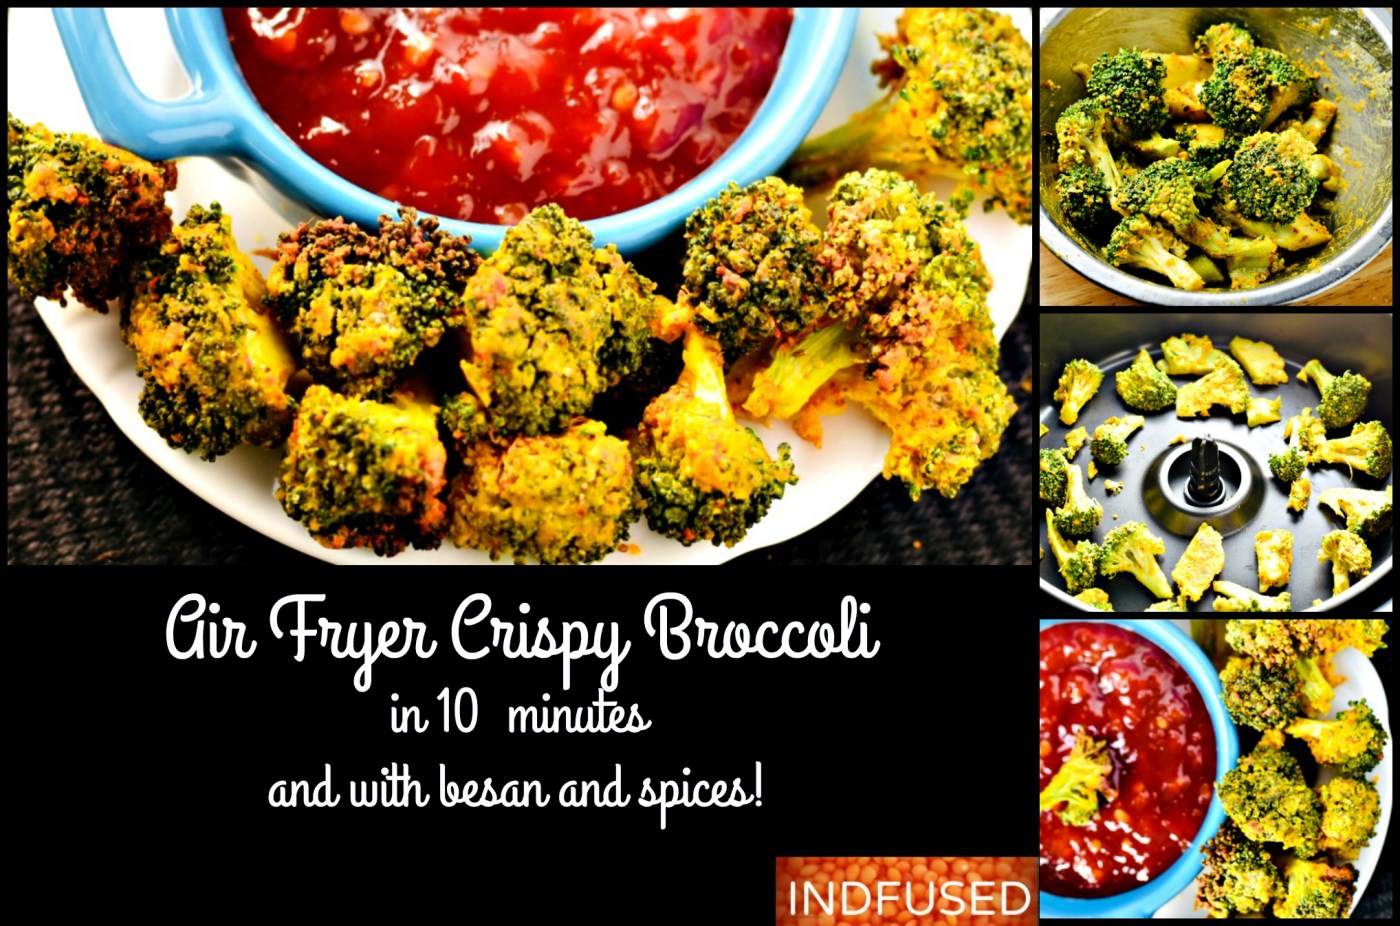 Air Fryer Crispy Broccoli with Besan and Spices, ready in 10 minutes!